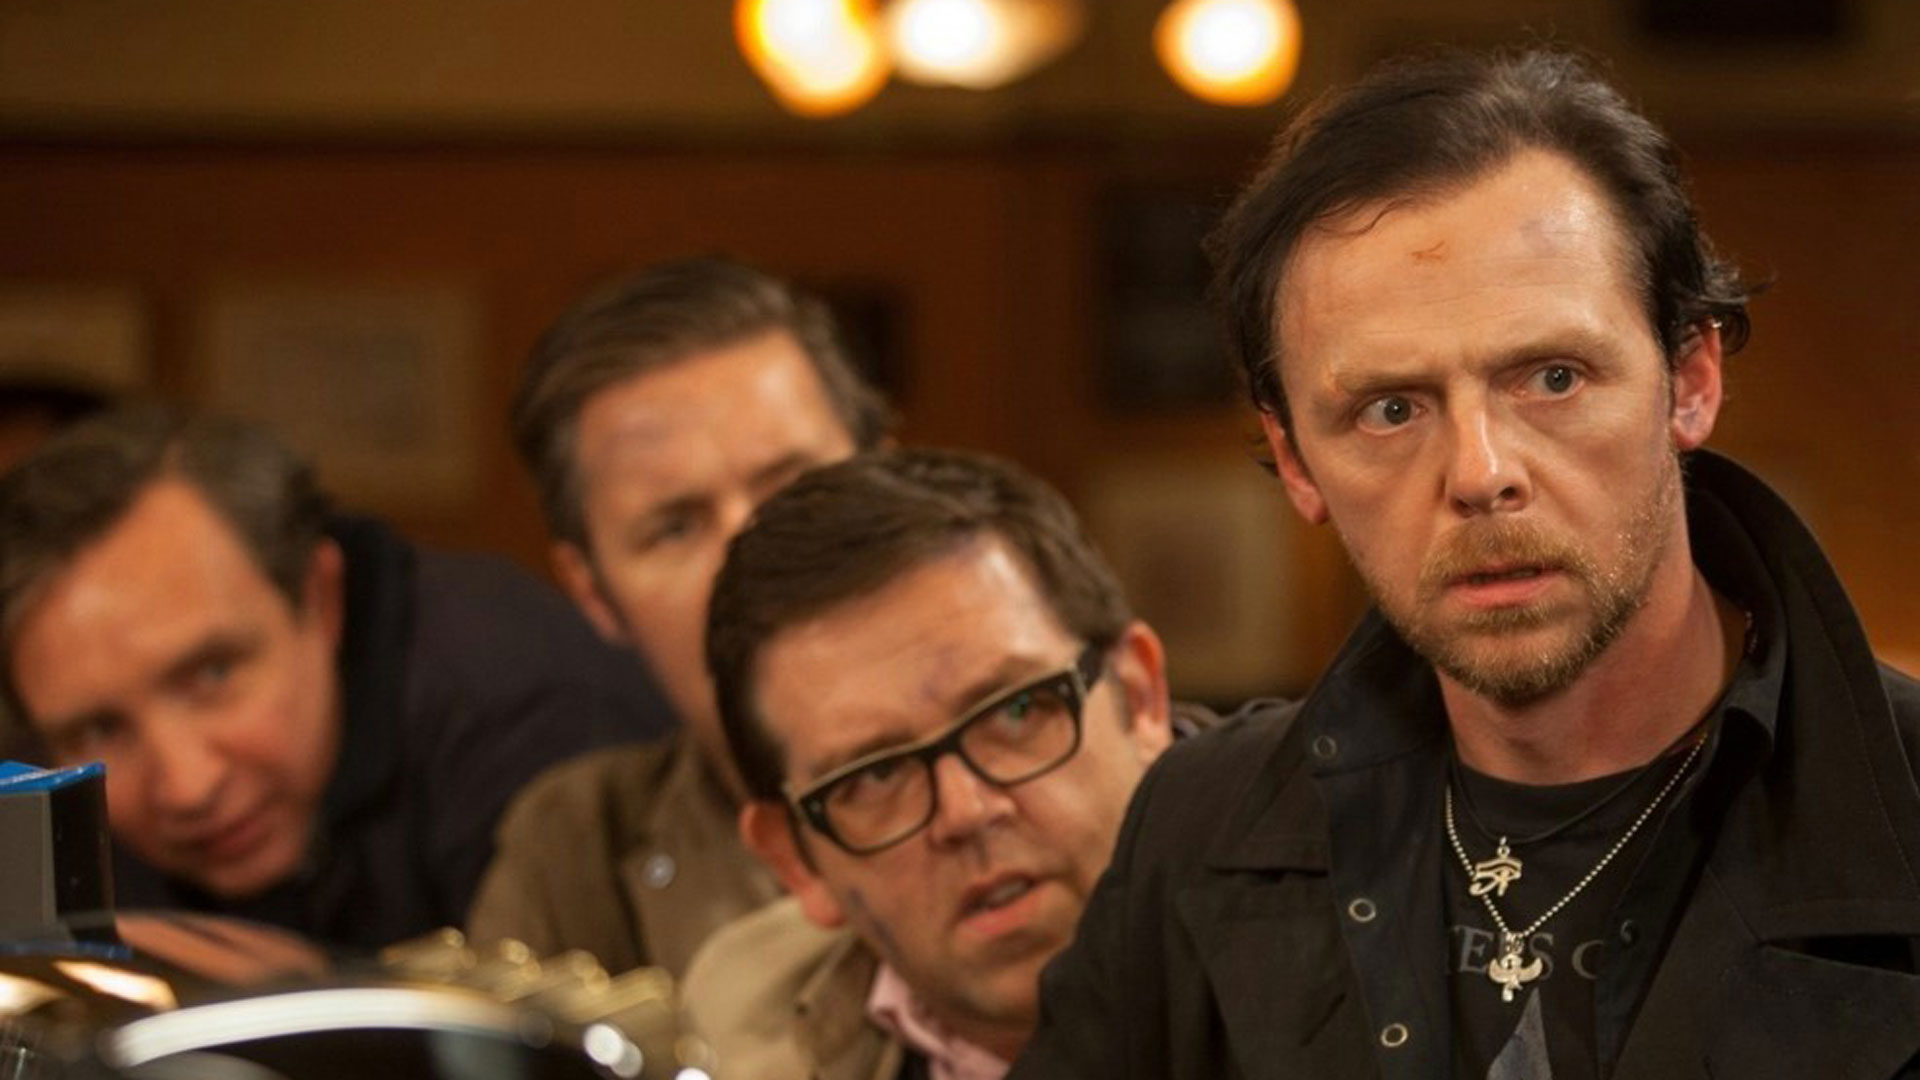 The World's End' Review: Edgar Wright, Simon Pegg's jaunty pastiche -  Variety